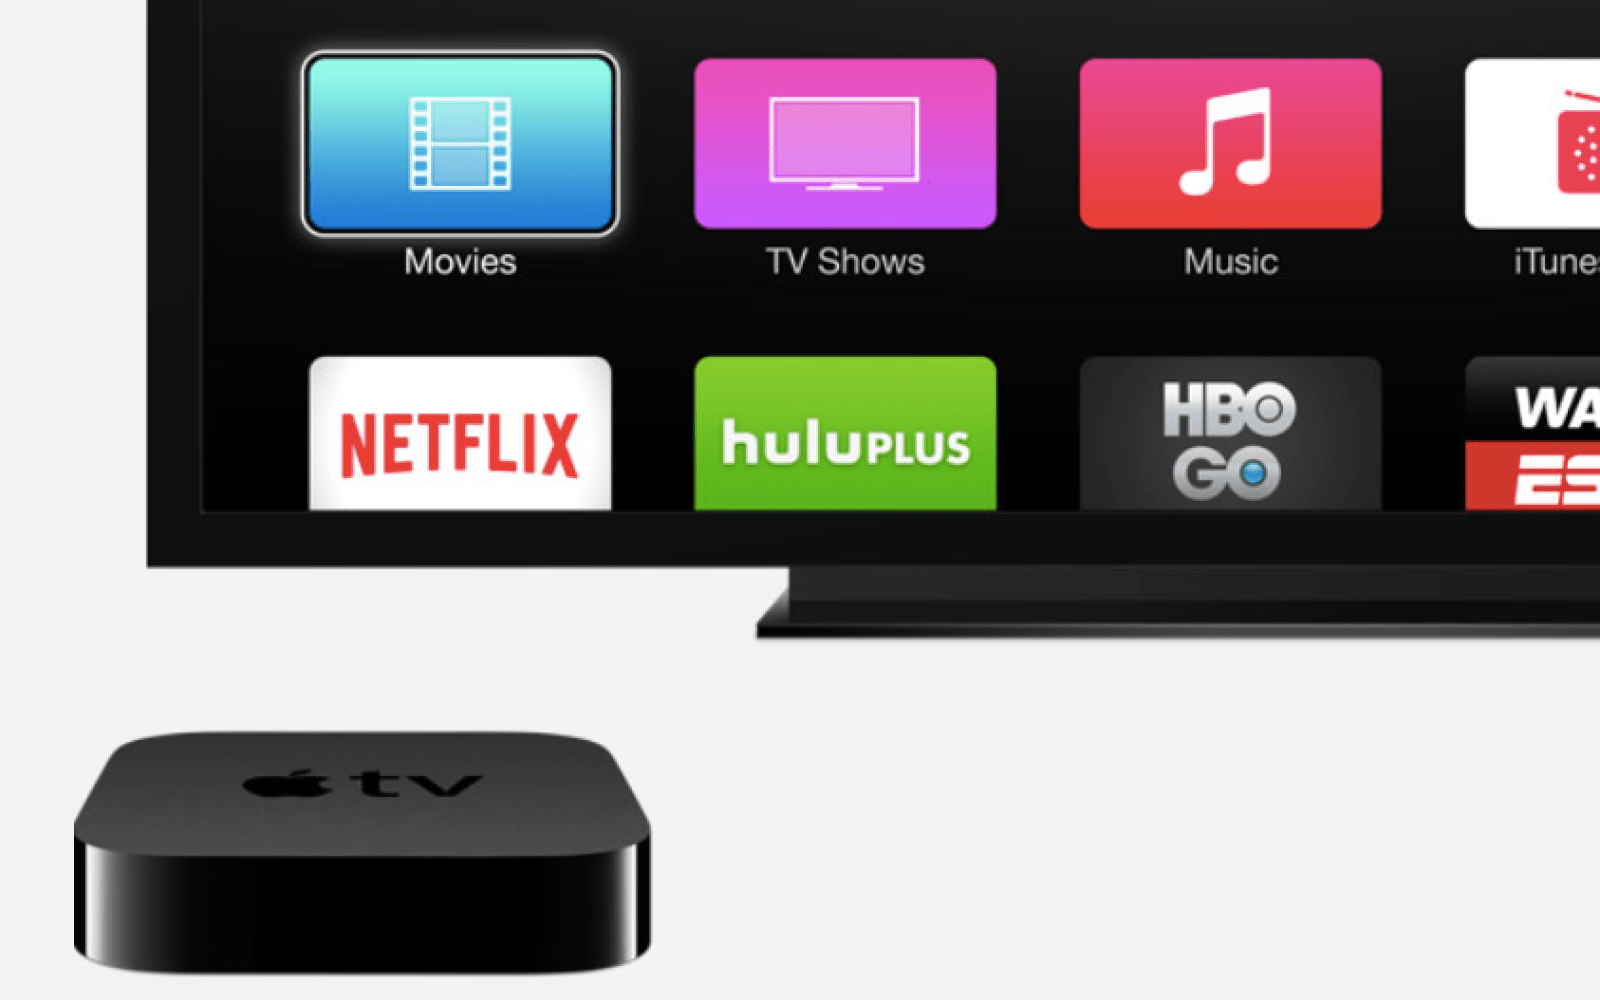 HBO's upcoming web-only subscription could unlock the full potential for Apple TV